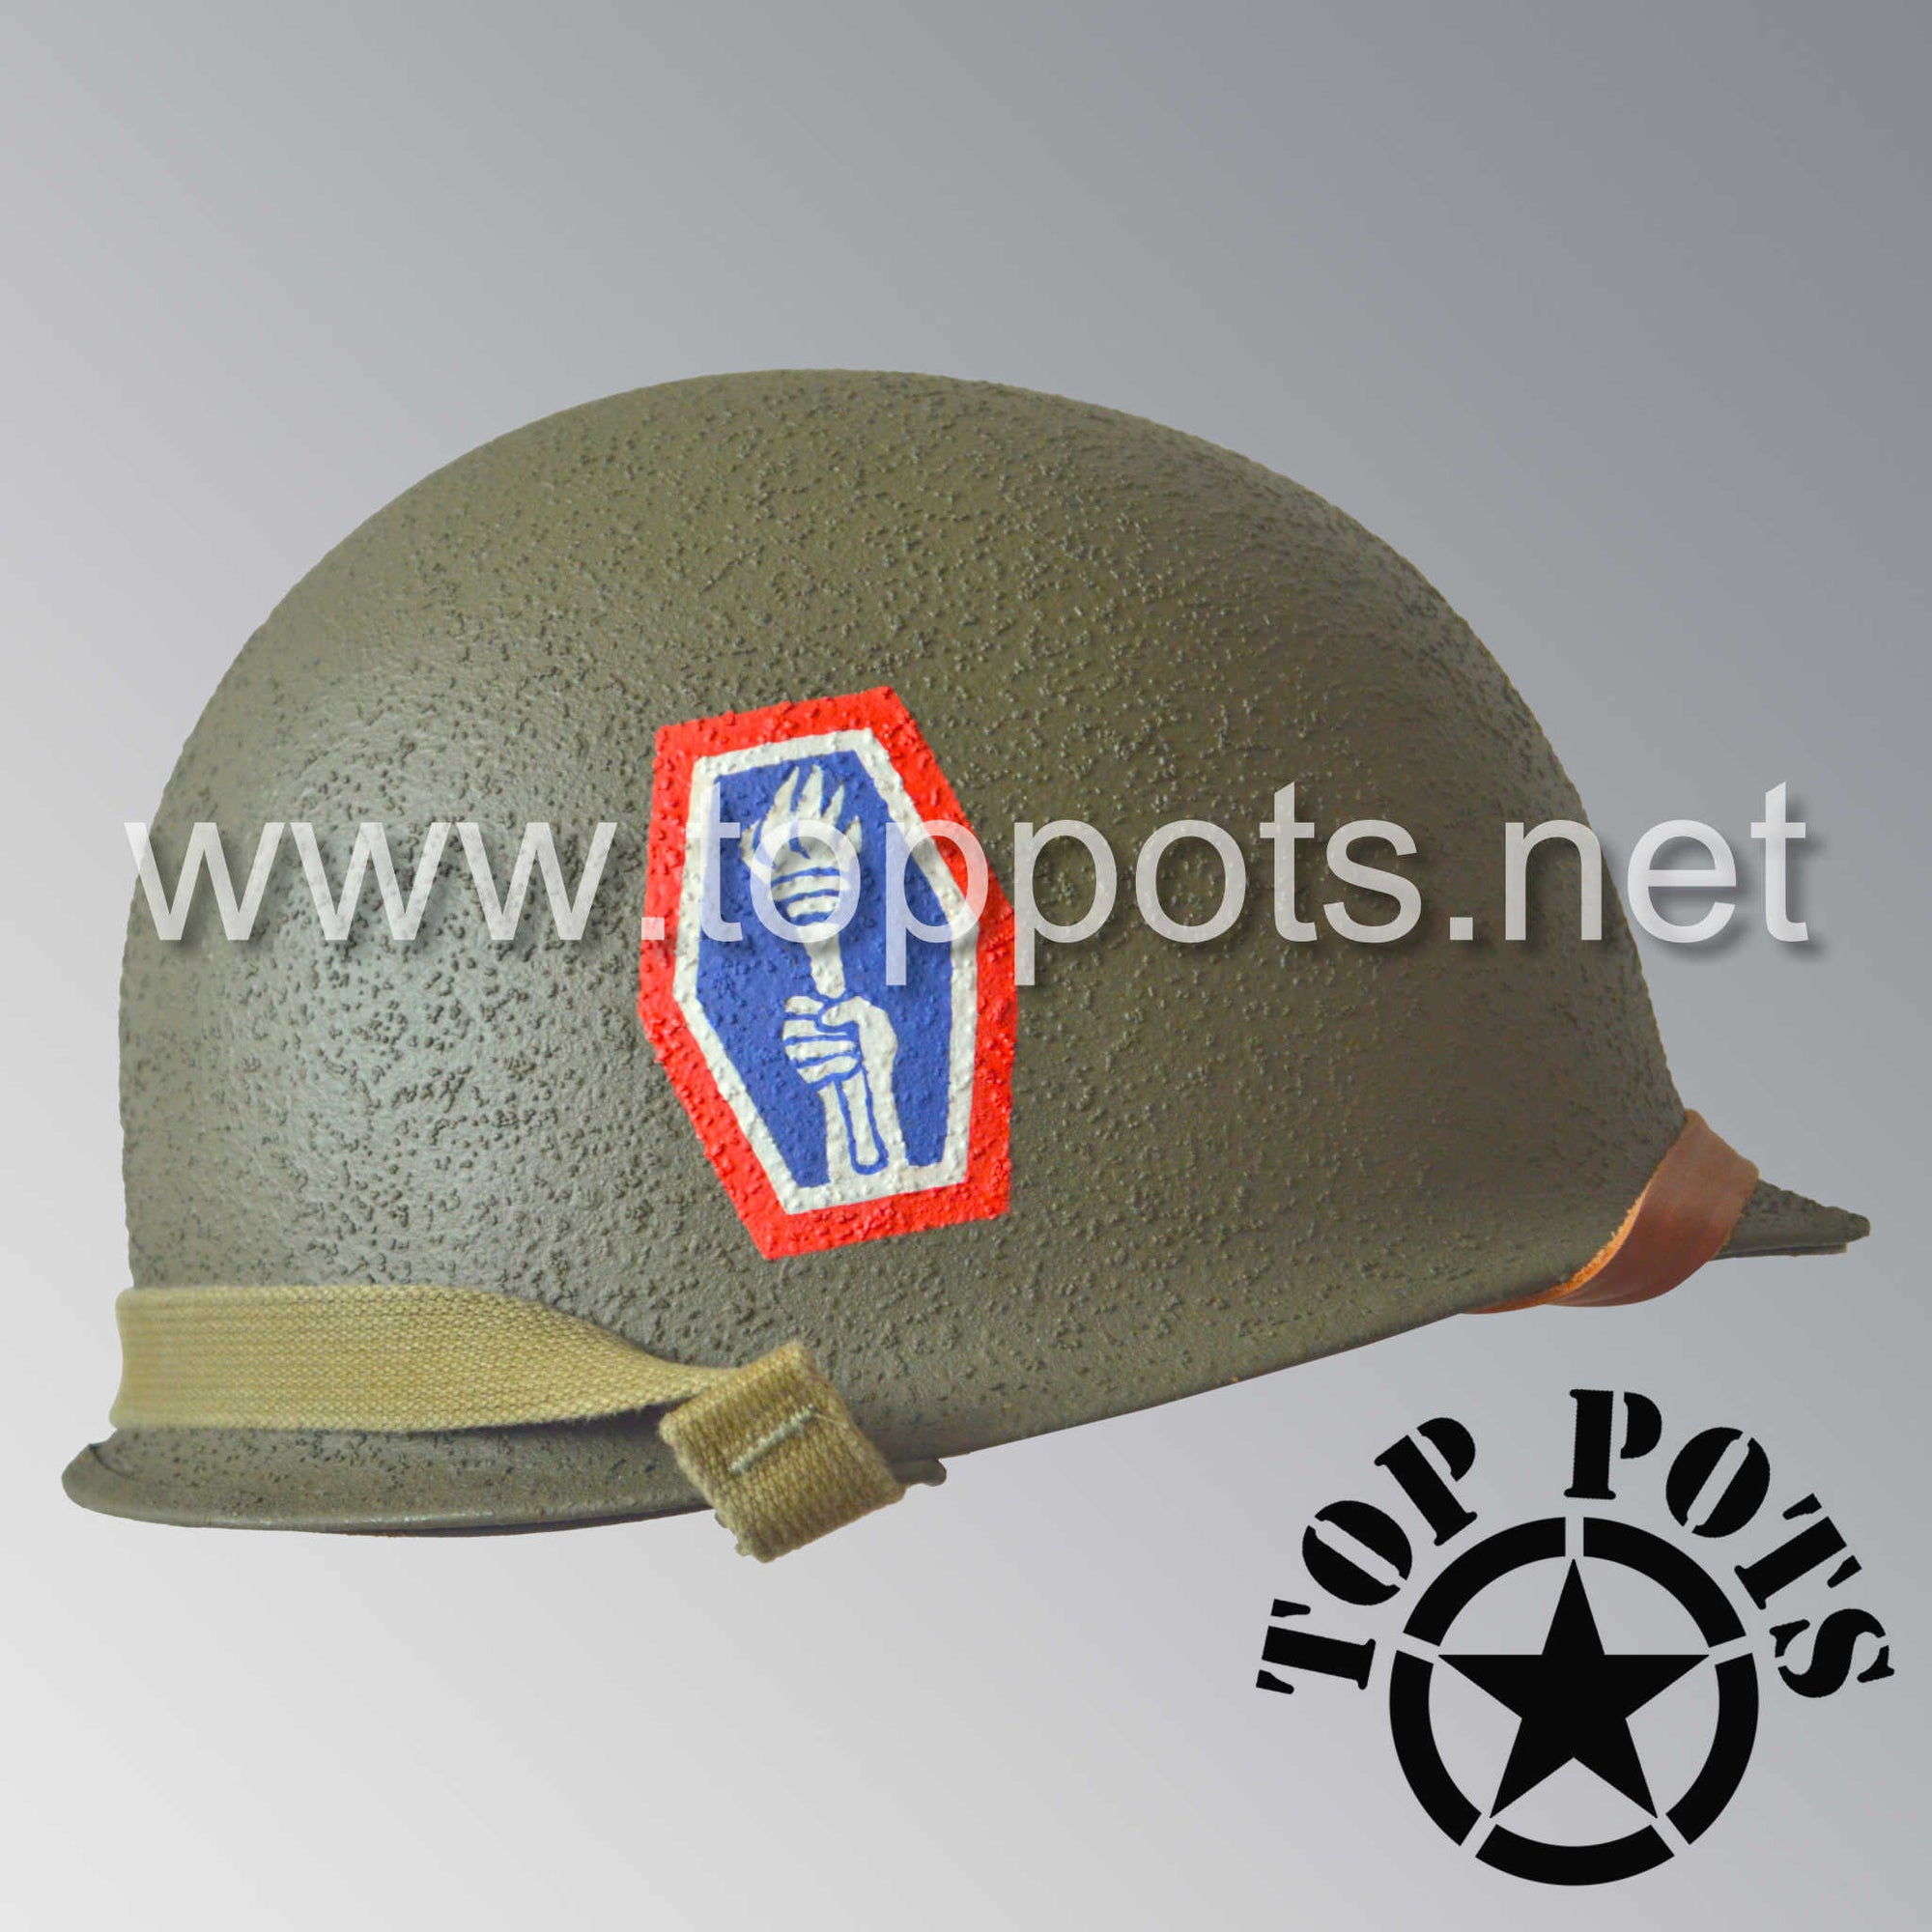 Image 2 of WWII US Army Restored Original M1 Infantry Helmet Swivel Bale Shell and Liner with 442nd Infantry Division Emblem